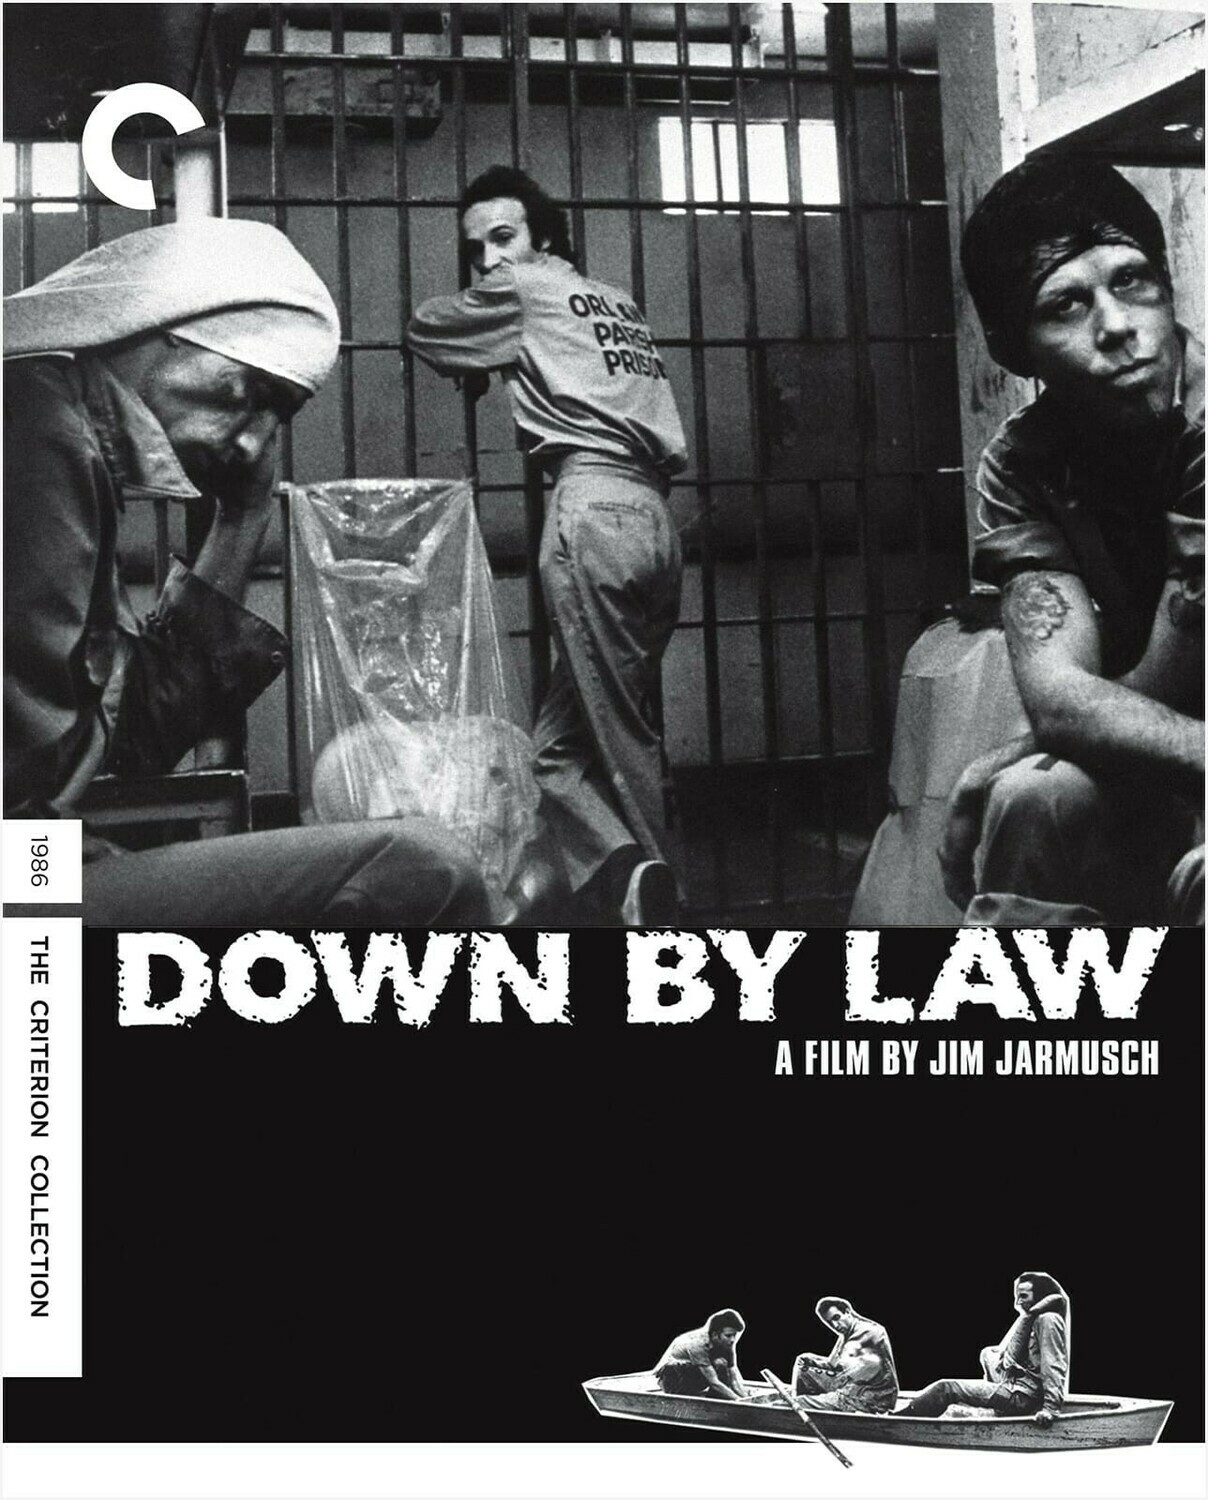 DOWN BY LAW - BLURAY